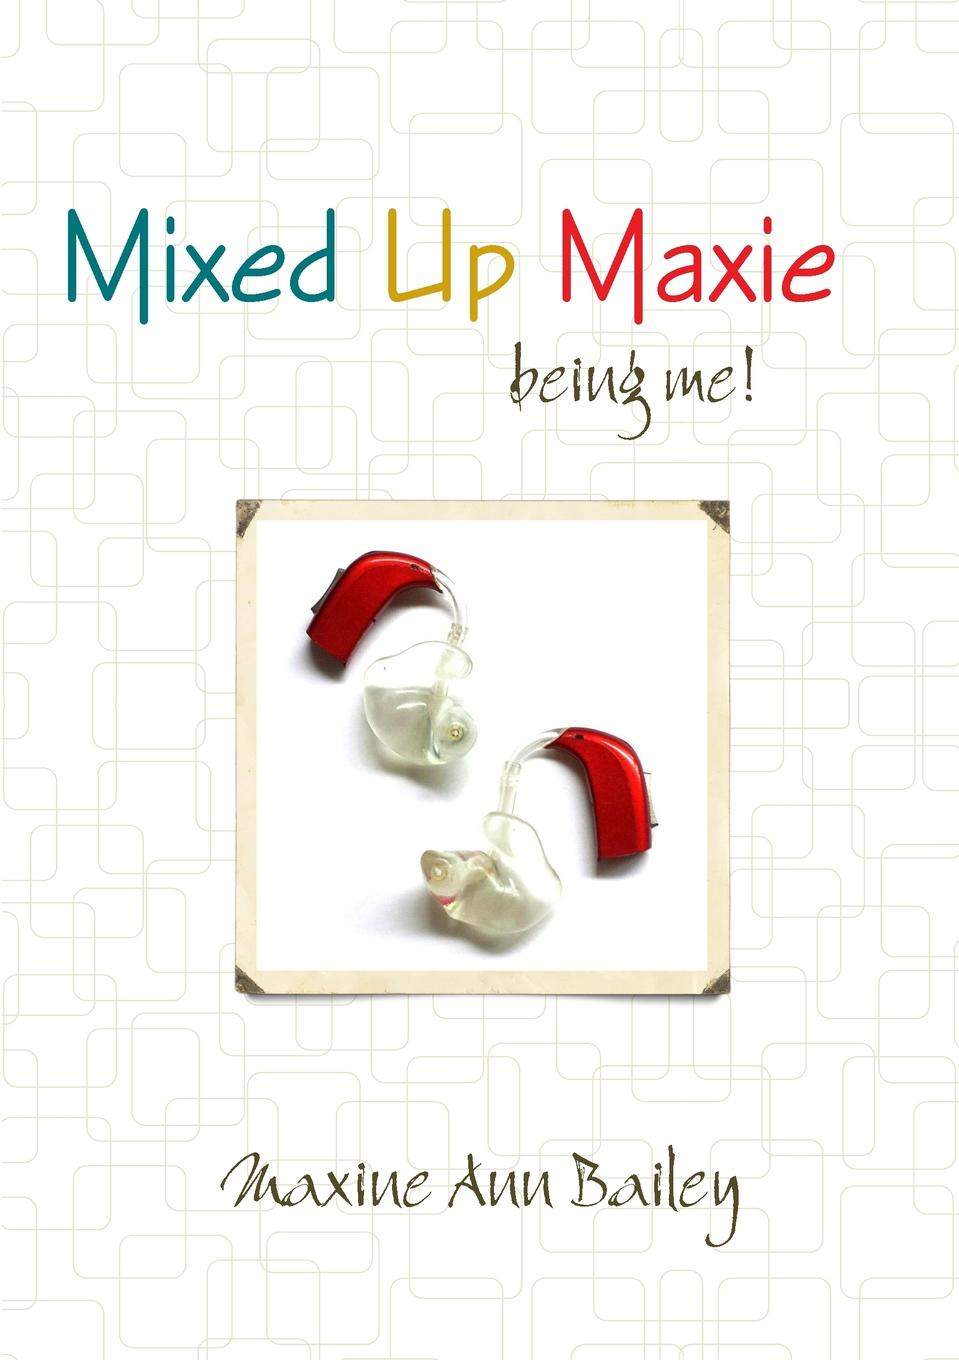 Maxine Ann Bailey Mixed Up Maxie being me. 2nd Revision july pocket hearing aid deaf aid sound audiphone voice amplifier digital sound amplifier ear amplifier hearing aids for elderly s 7b